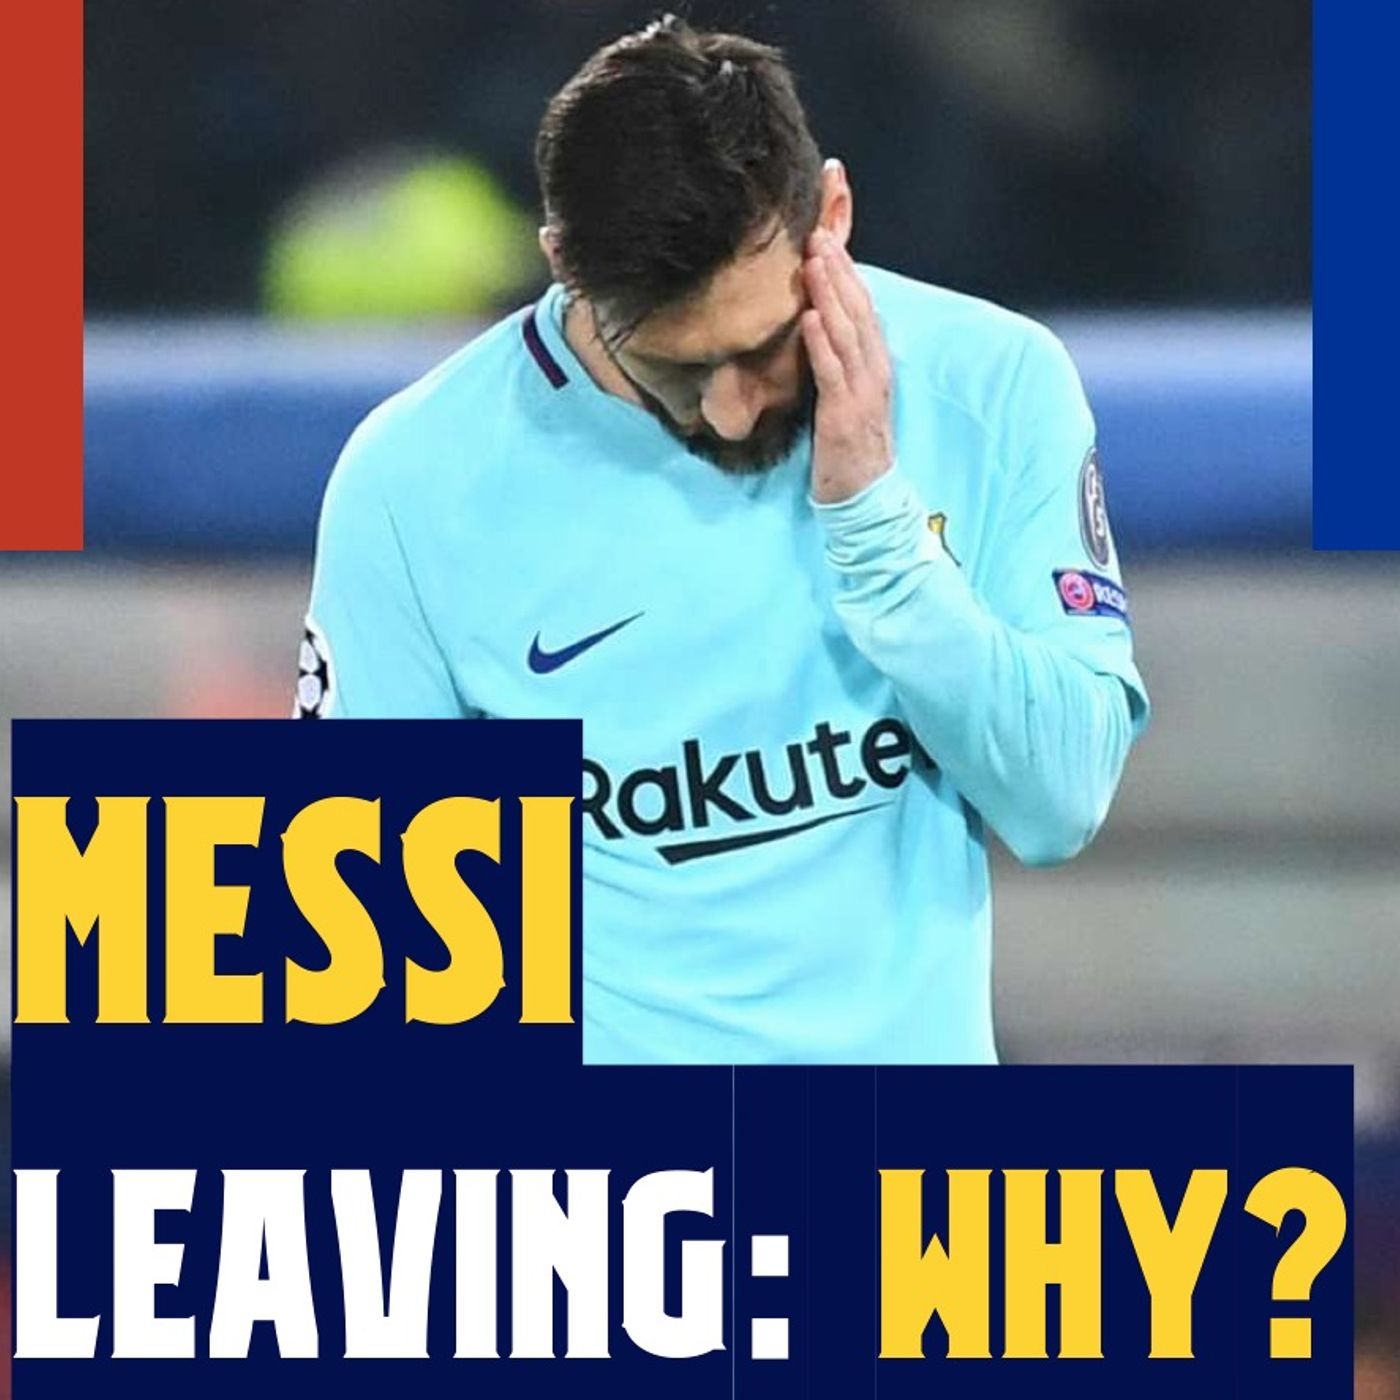 Messi LEAVING Barcelona: Why? When? How did we get here? What's next?